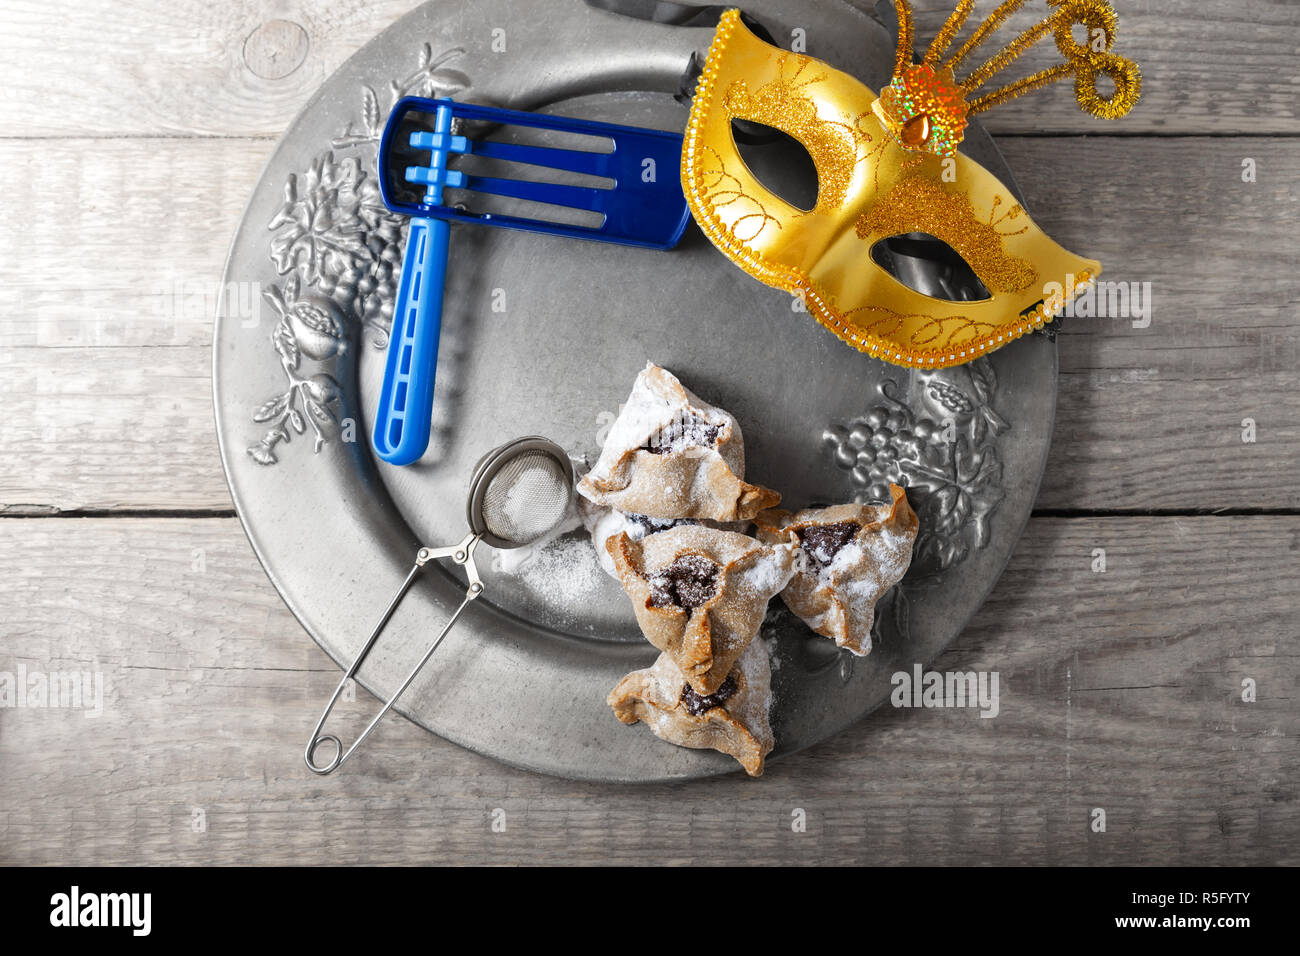 Jewish Pastry Hamantaschen with a mask - Stock Image